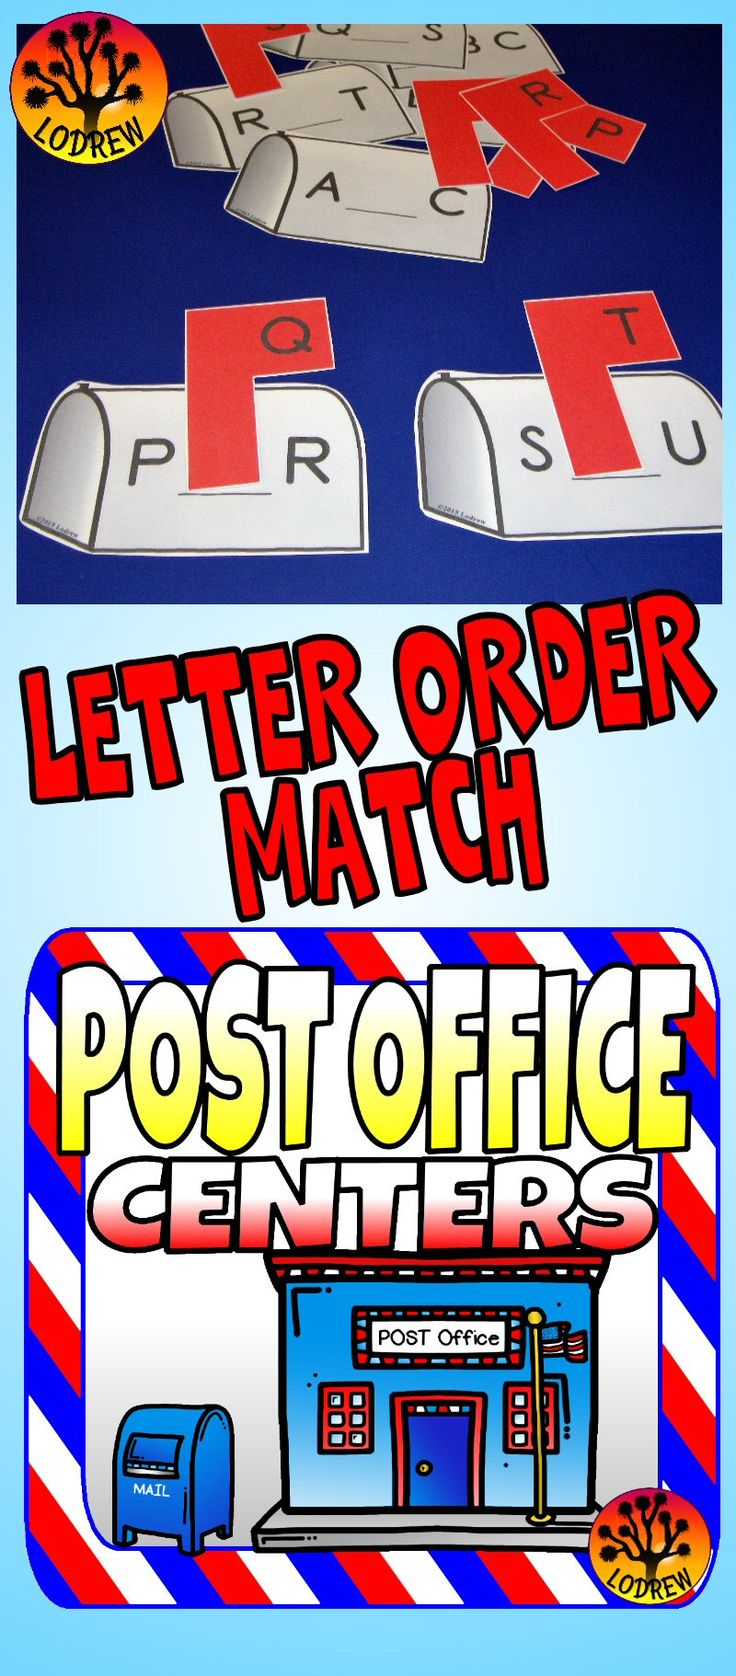 106 pages of Post Office and Mail centers. Activities include literacy, math, beginning sounds, ending sounds, rhyming, visual discrimination, counting, tracing, number sets, letter matching, fine motor, and more. For kindergarten, preschool, SPED, child care, homeschool, or any early childhood setting.